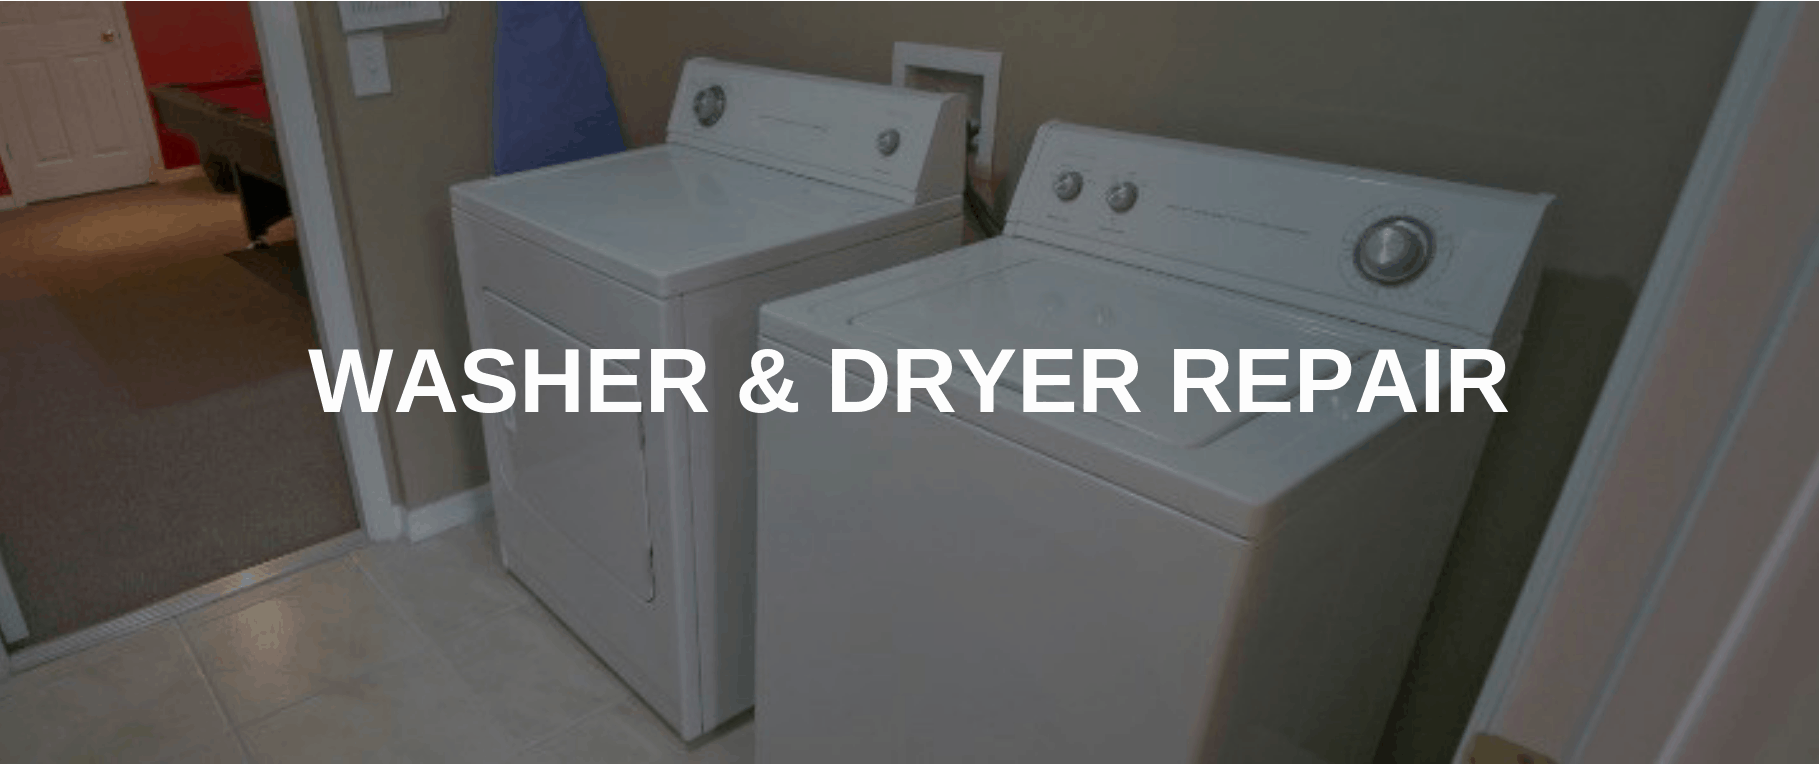 washing machine repair hialeah